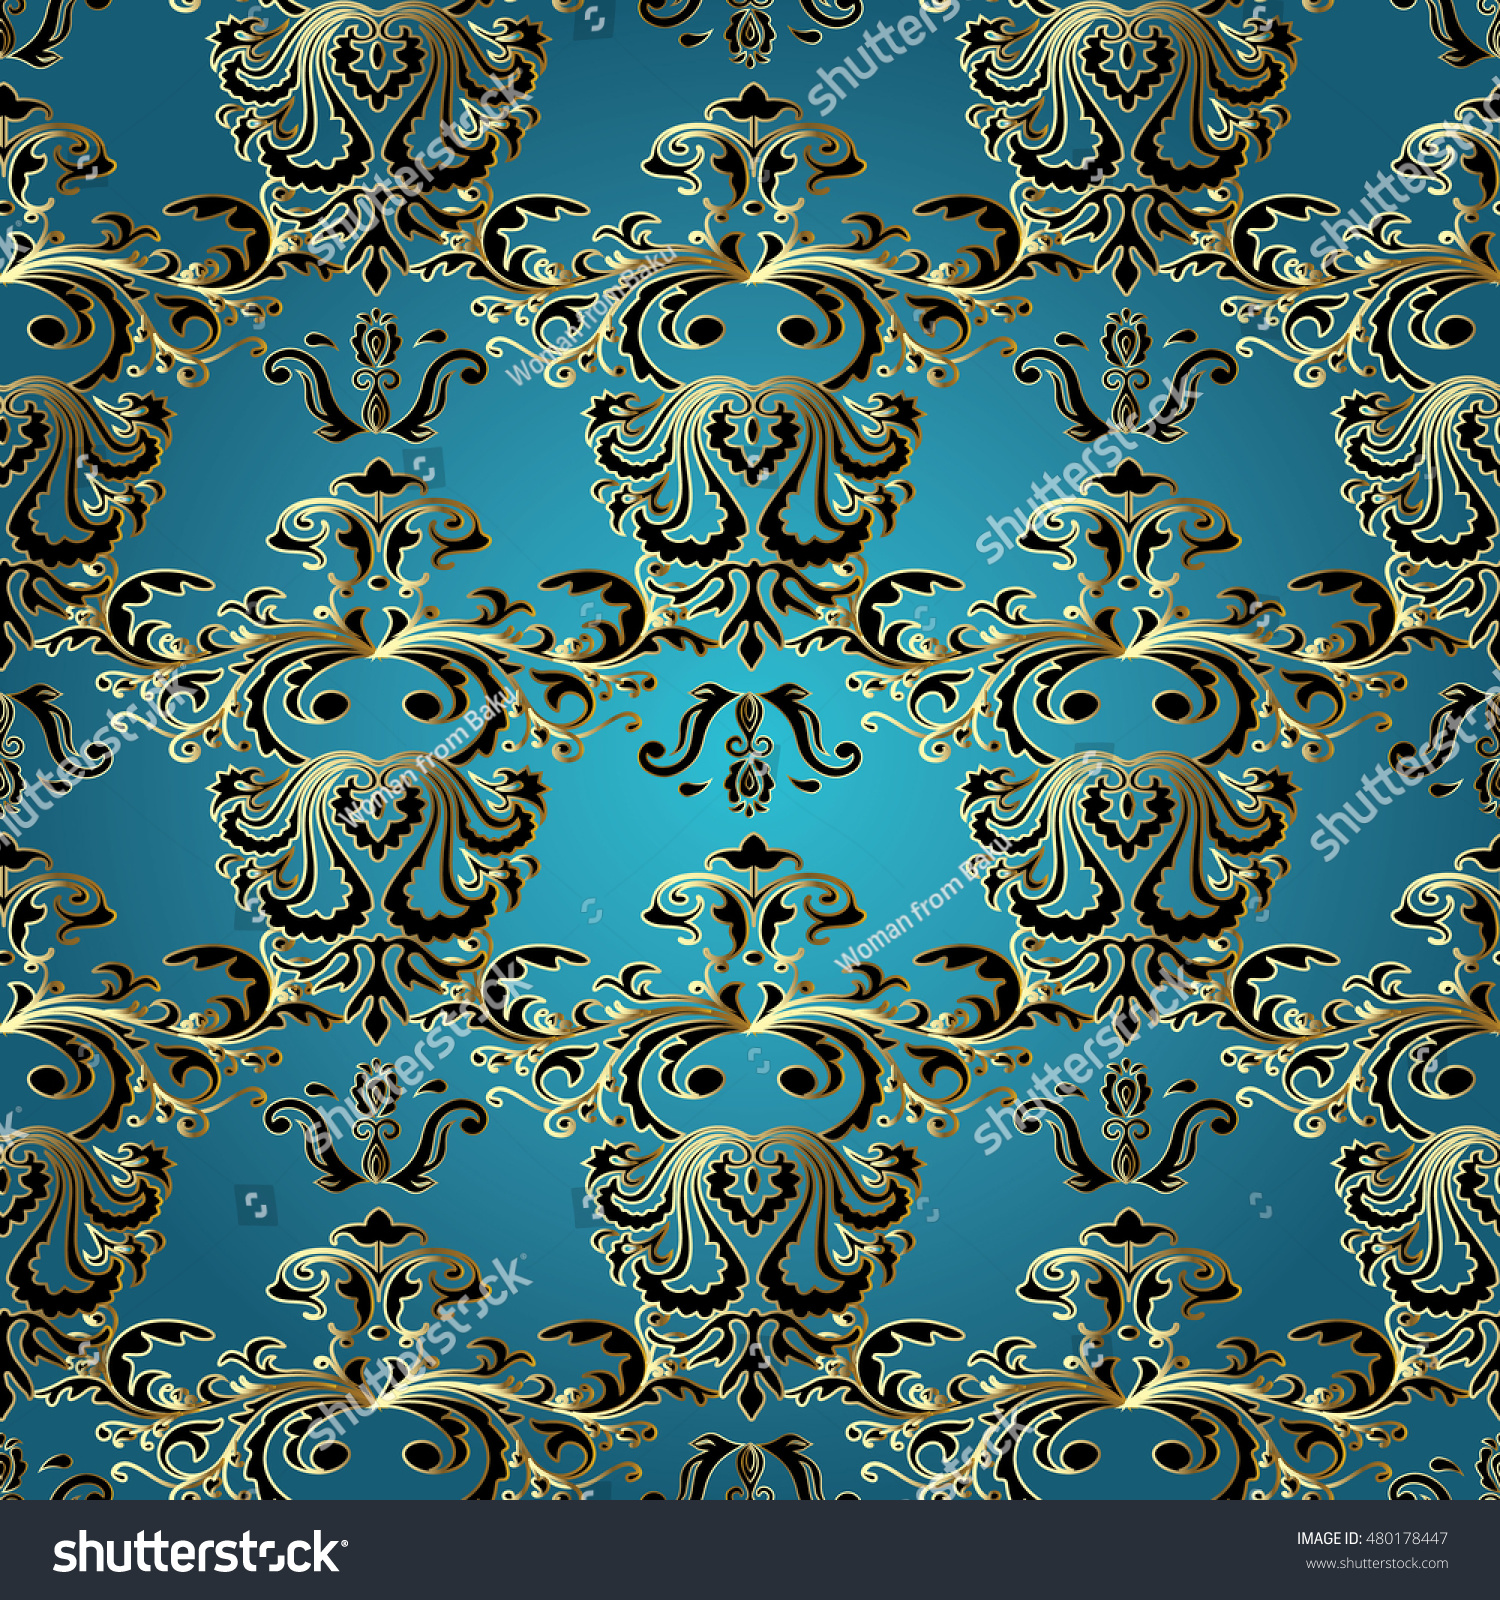 Light Blue Royal Baroque Damask Vector 480178447